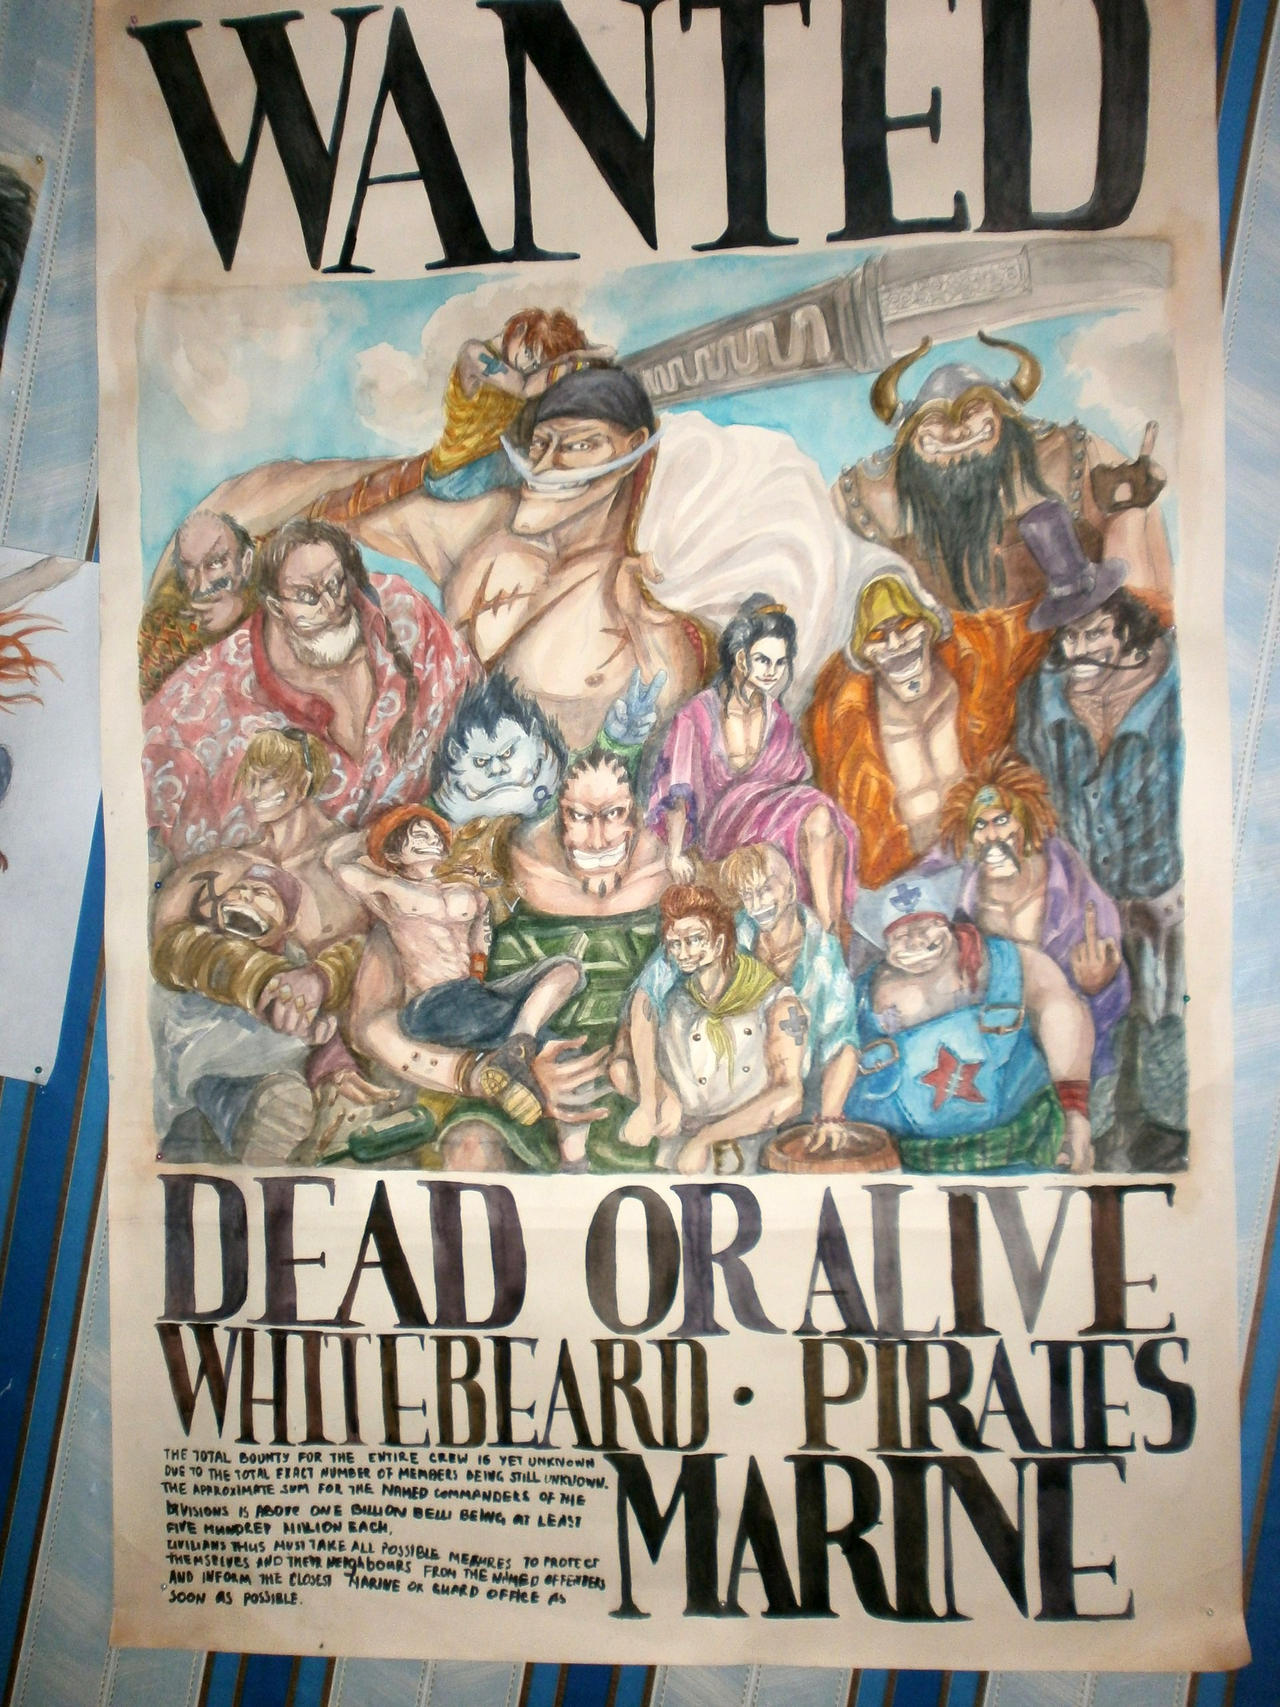 Whitebeard Pirates - Wanted Poster by FuckShinigami on ...